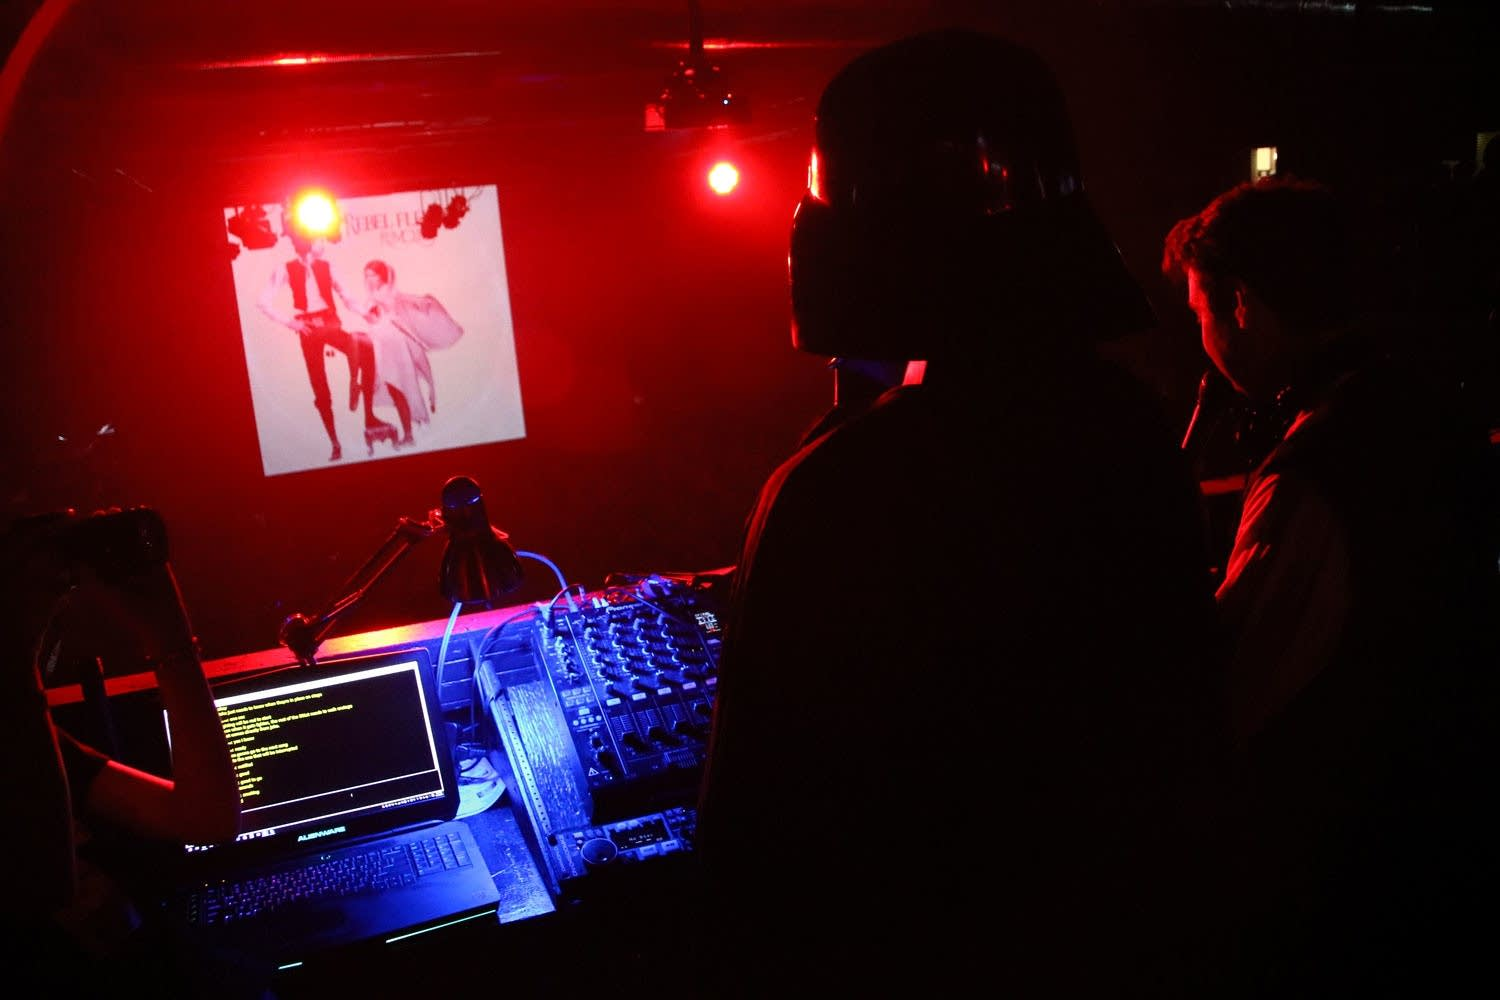 Darth Vader joins Jake Rudh in the DJ booth